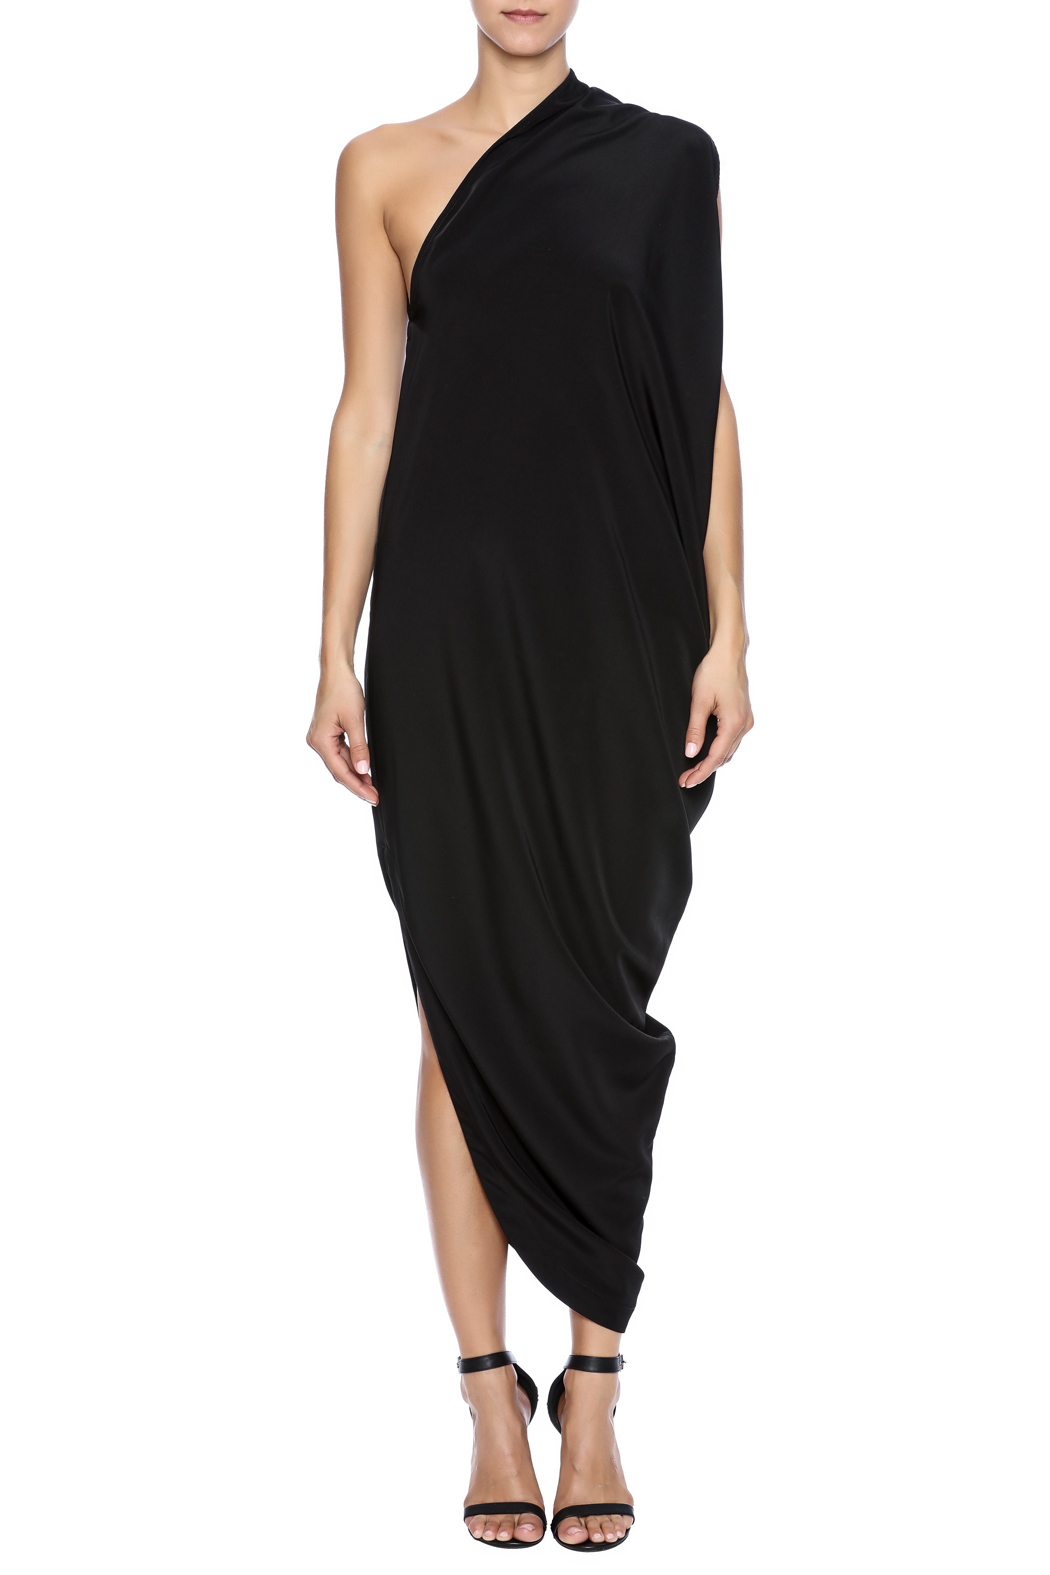 NINObrand Asymmetric One Shoulder Dress - Front Cropped Image